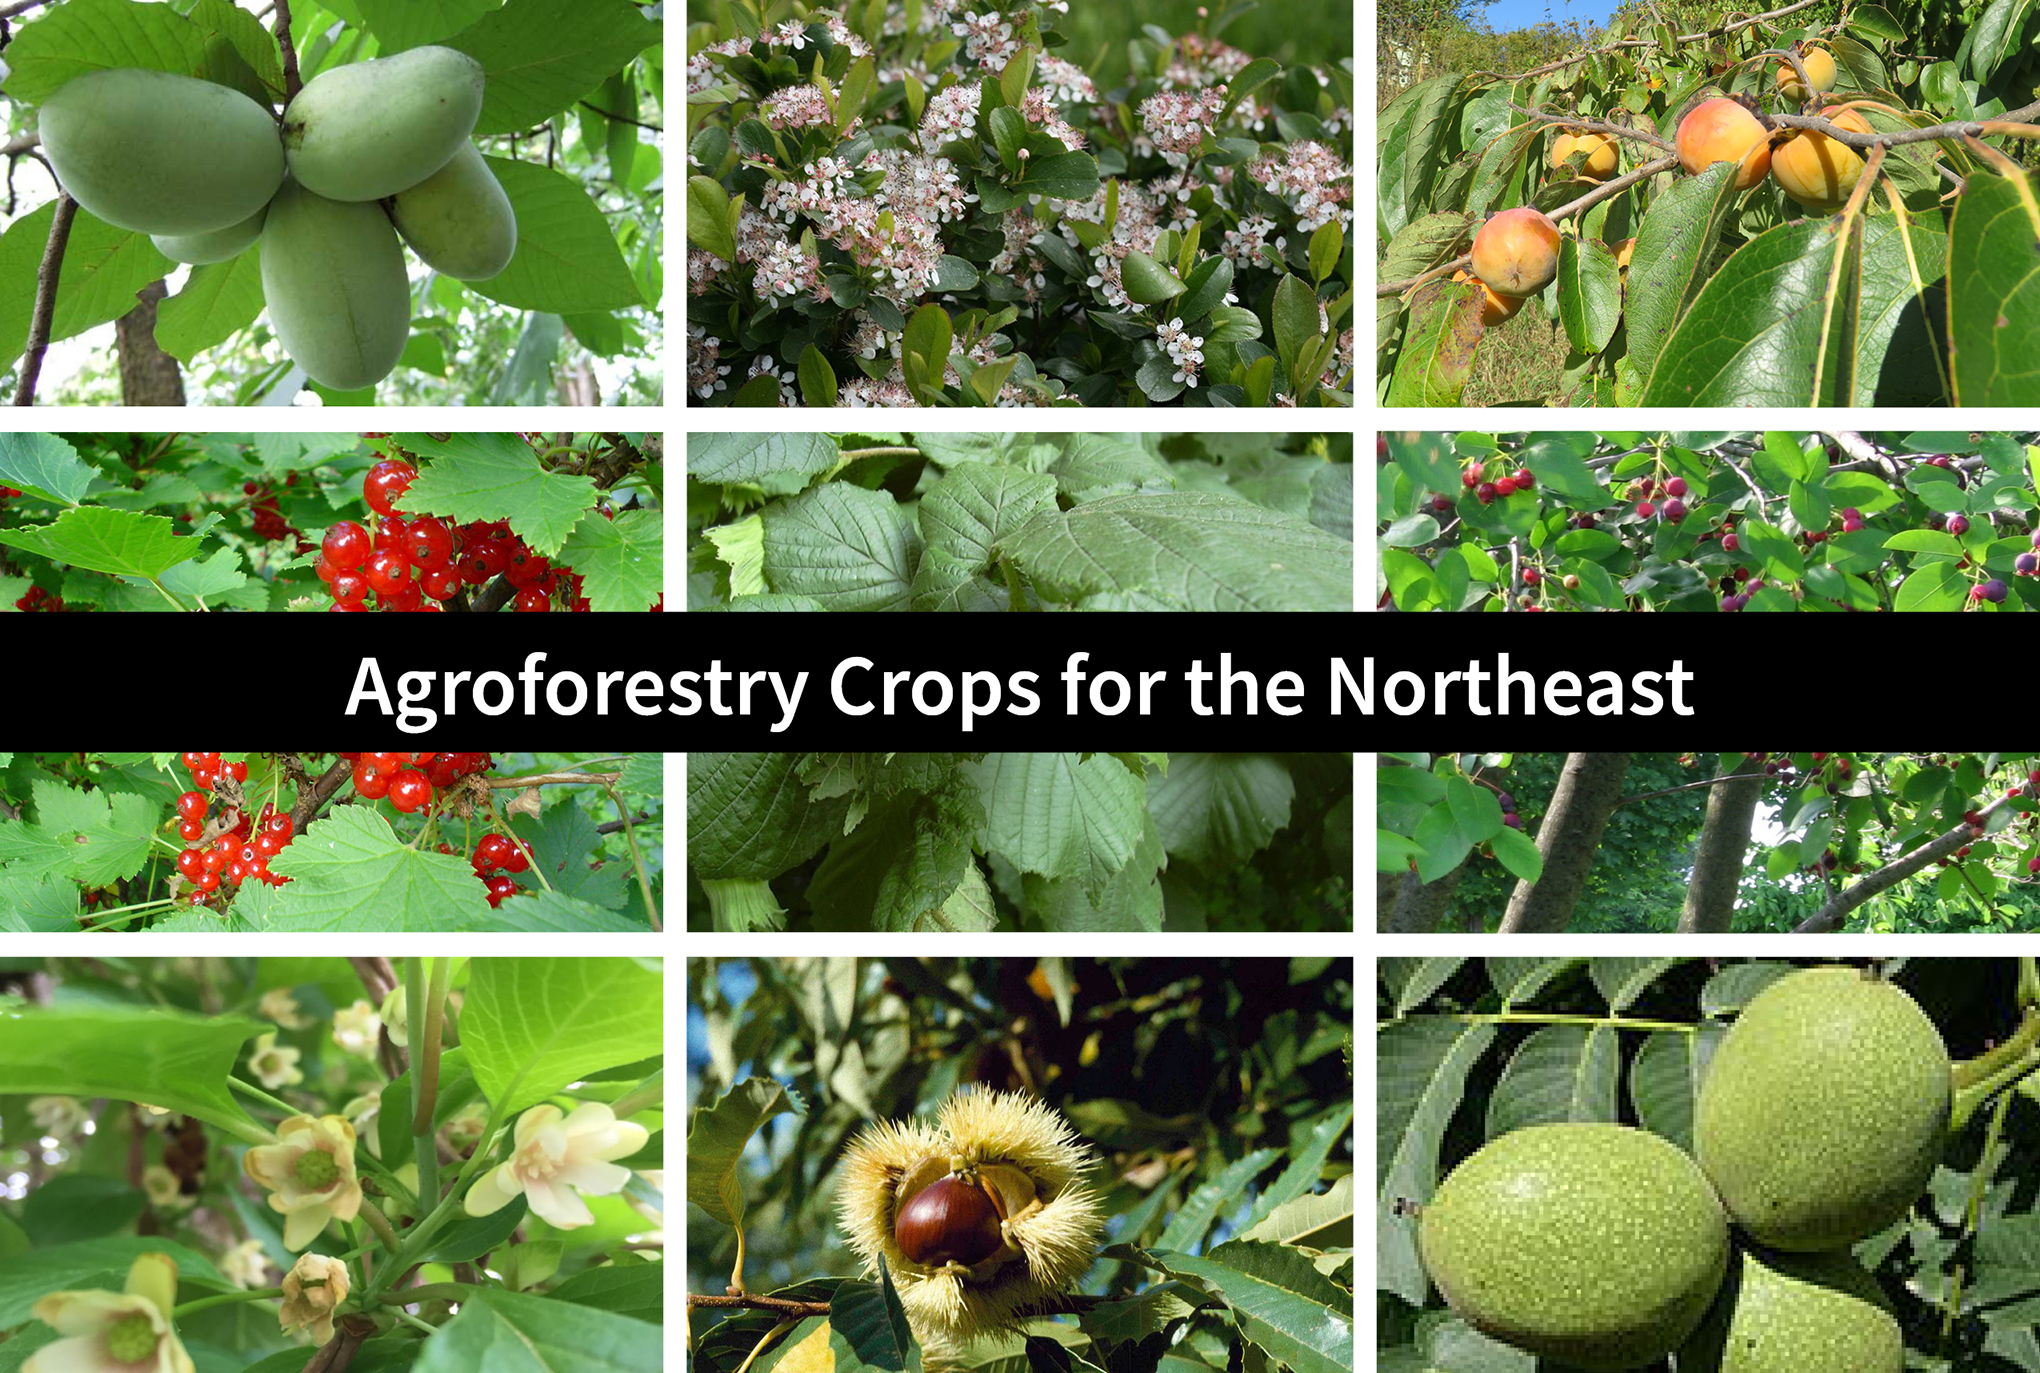 Agroforestry Crops For The Northeast